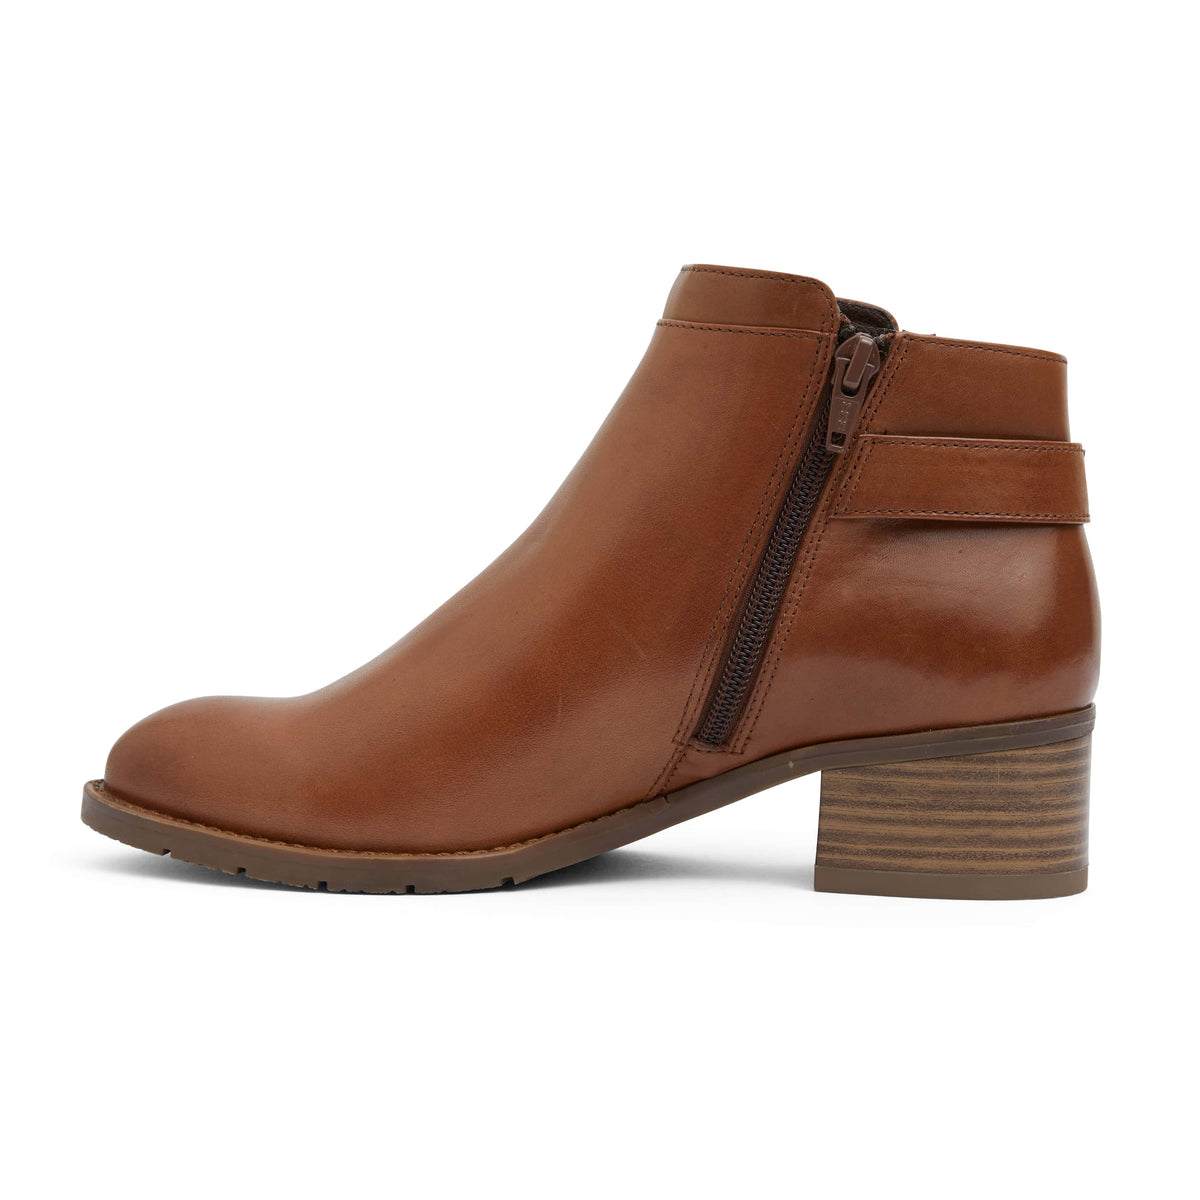 Fresco Boot in Mid Brown Leather